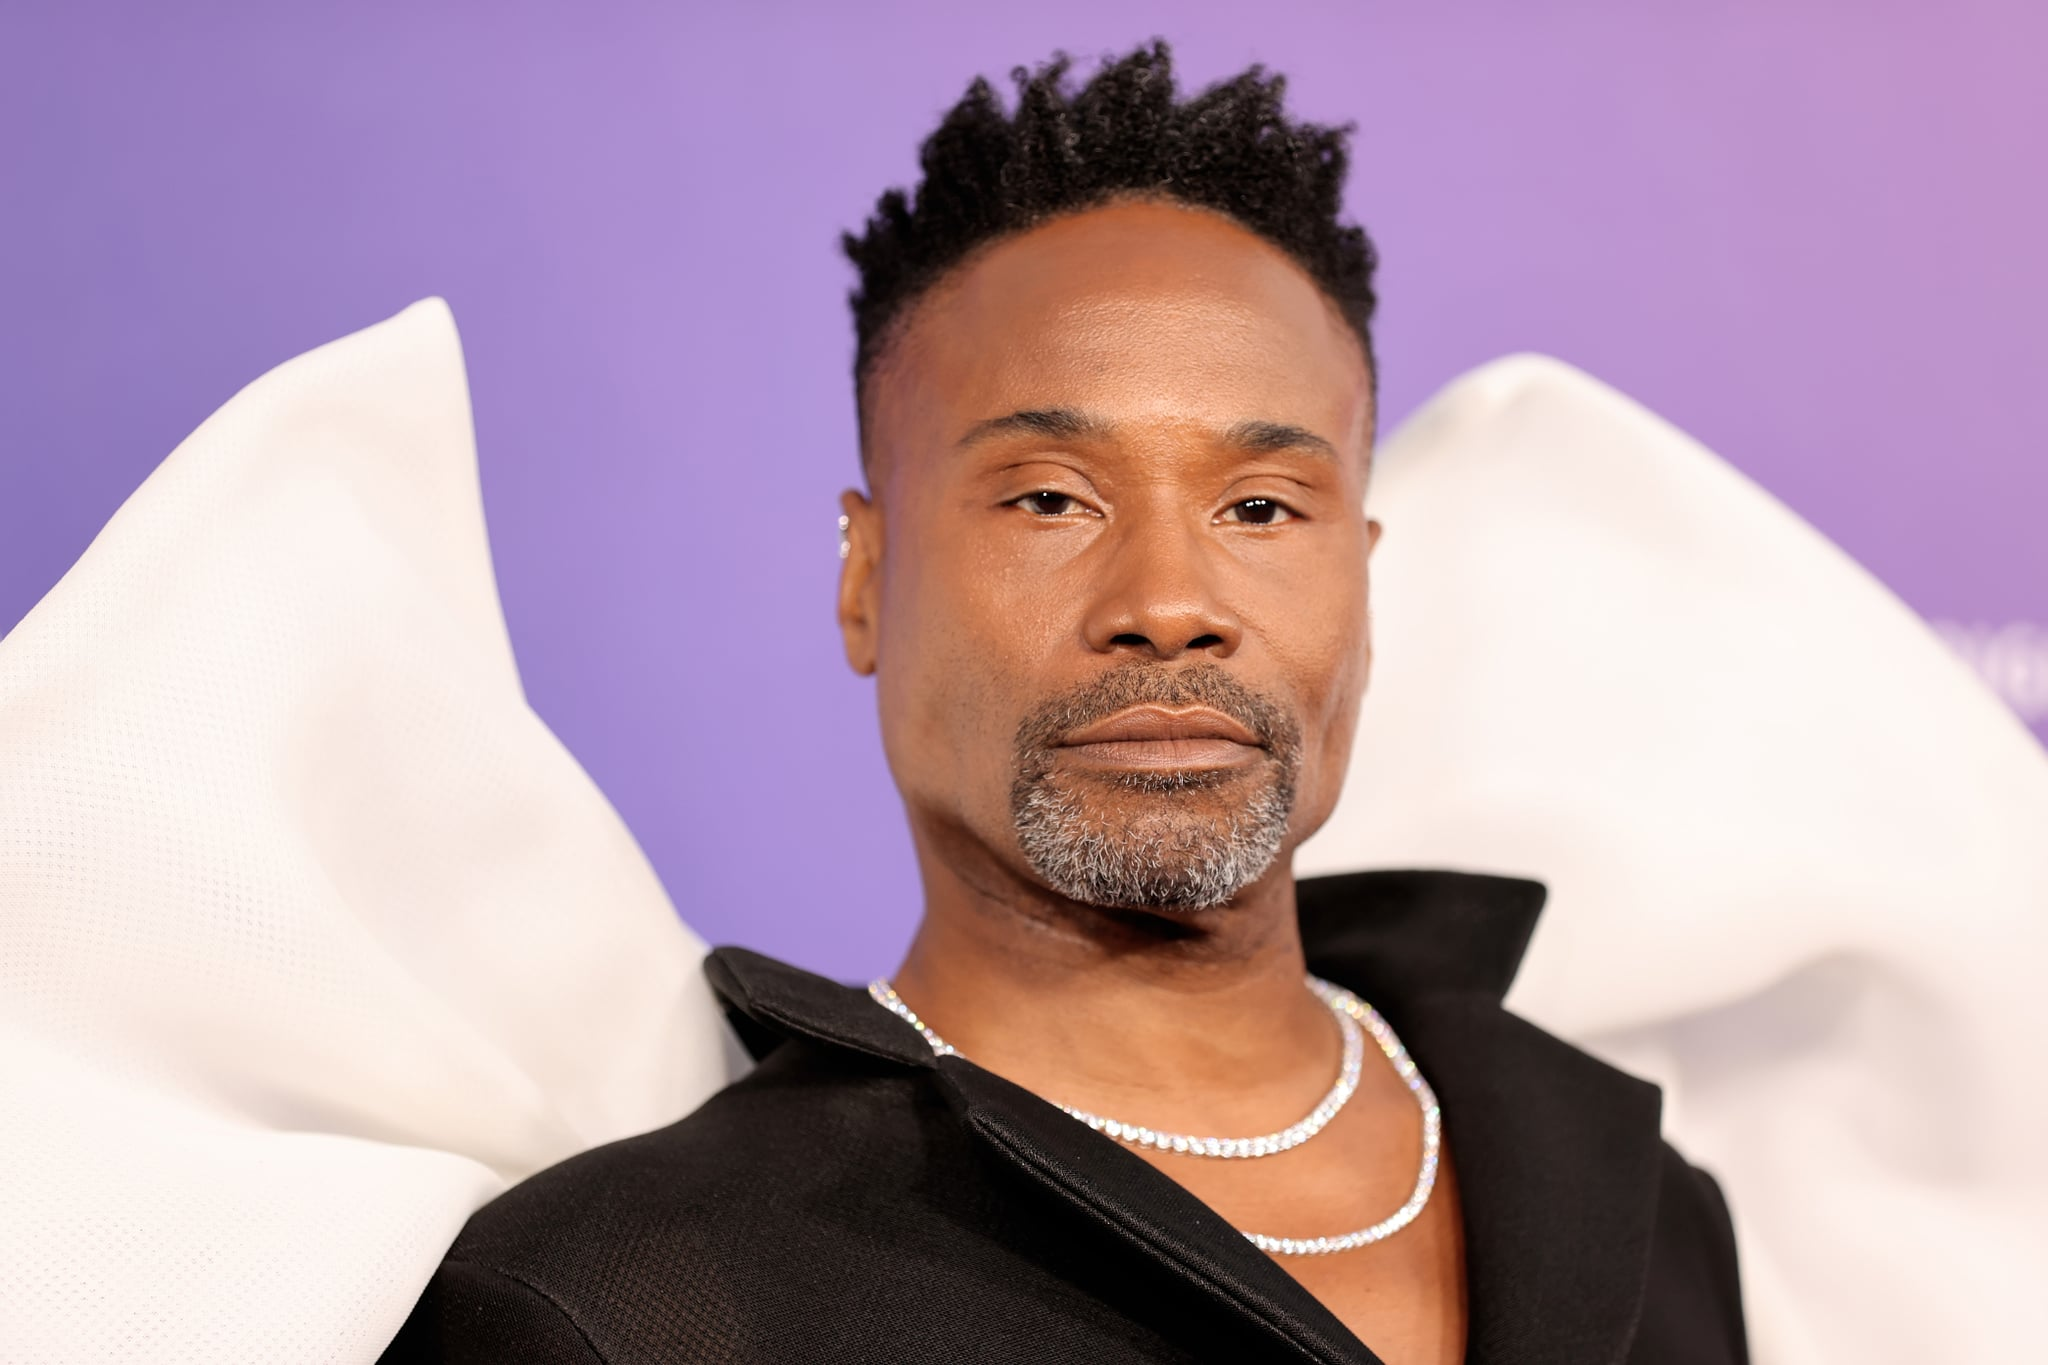 LOS ANGELES, CALIFORNIA - AUGUST 30: Billy Porter attends the Los Angeles Premiere of Amazon Studios'